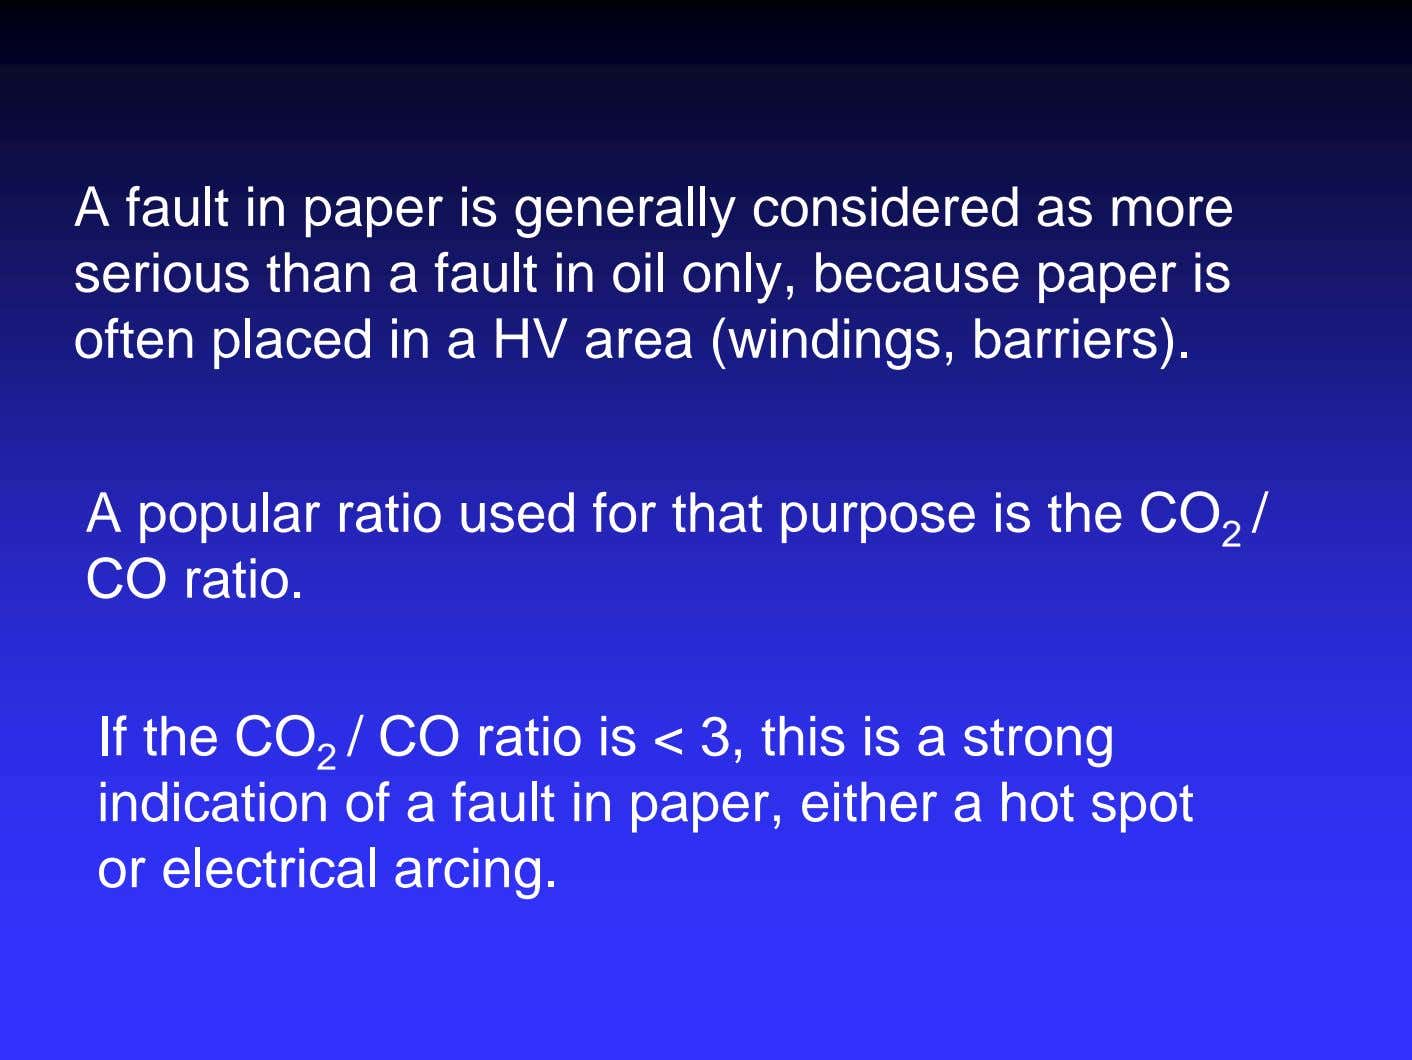 A fault in paper is generally considered as more serious than a fault in oil